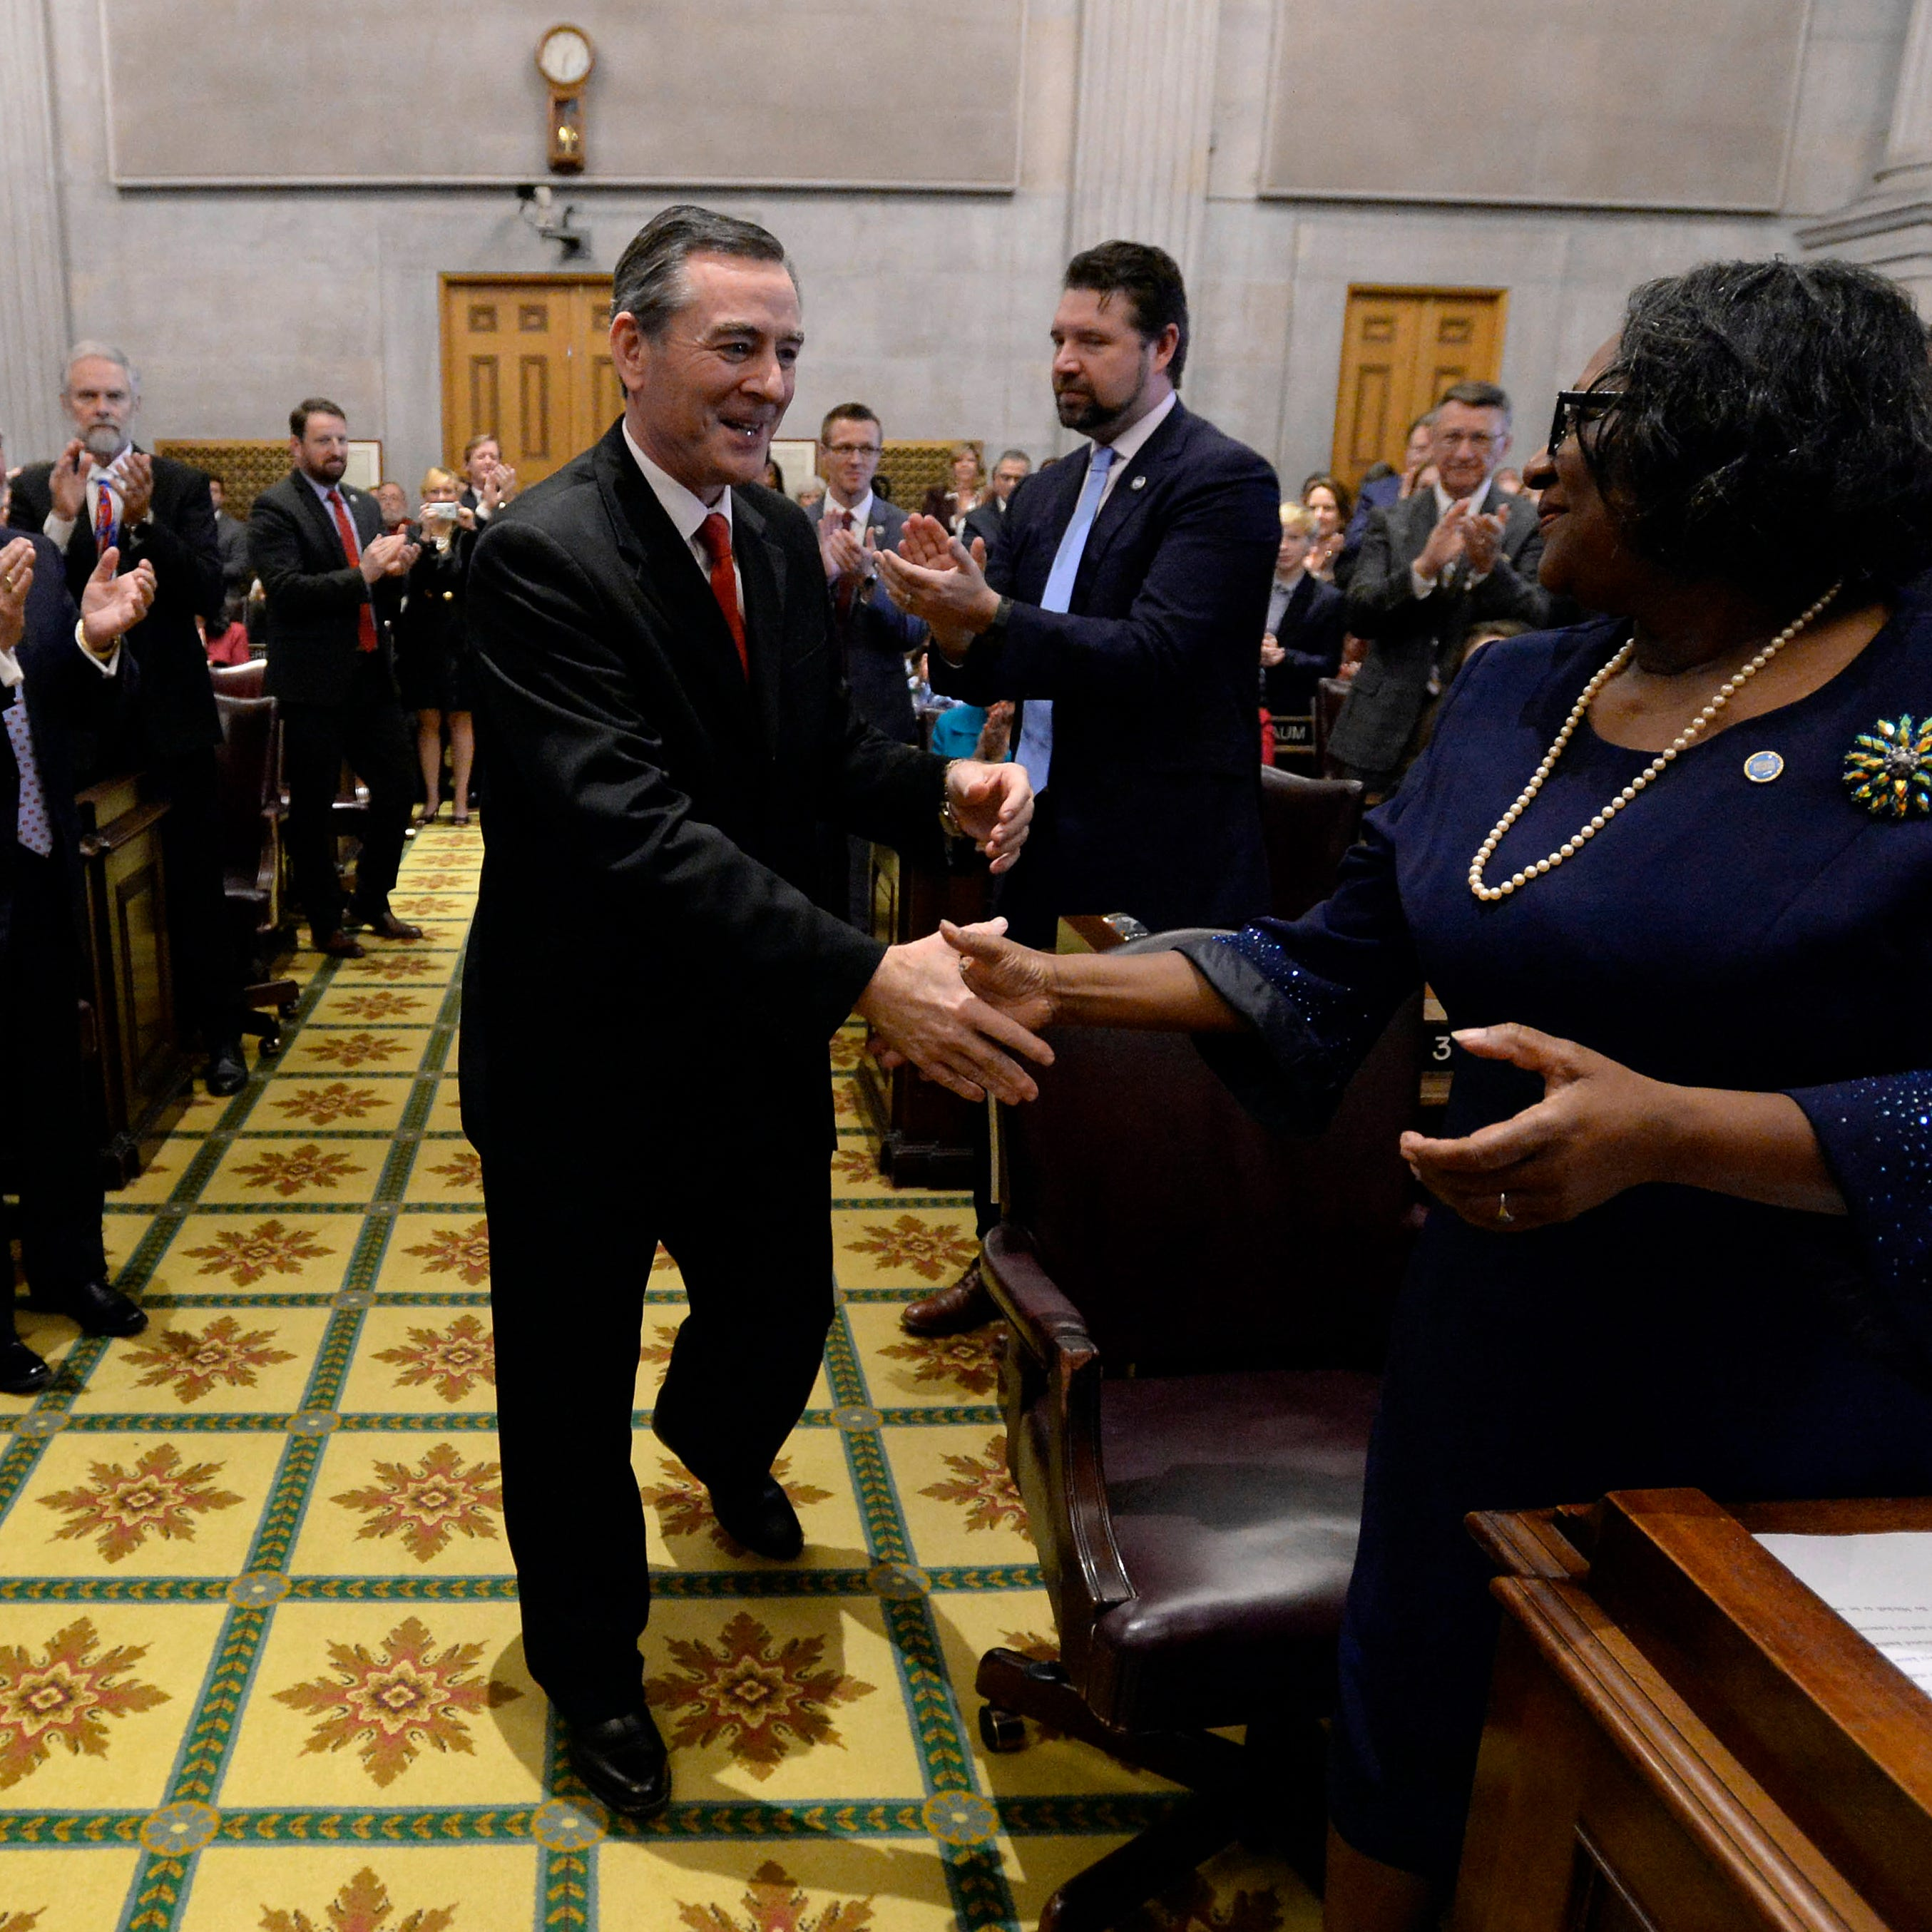 Glen Casada's leadership under scrutiny as lawmakers say he created environment of fear